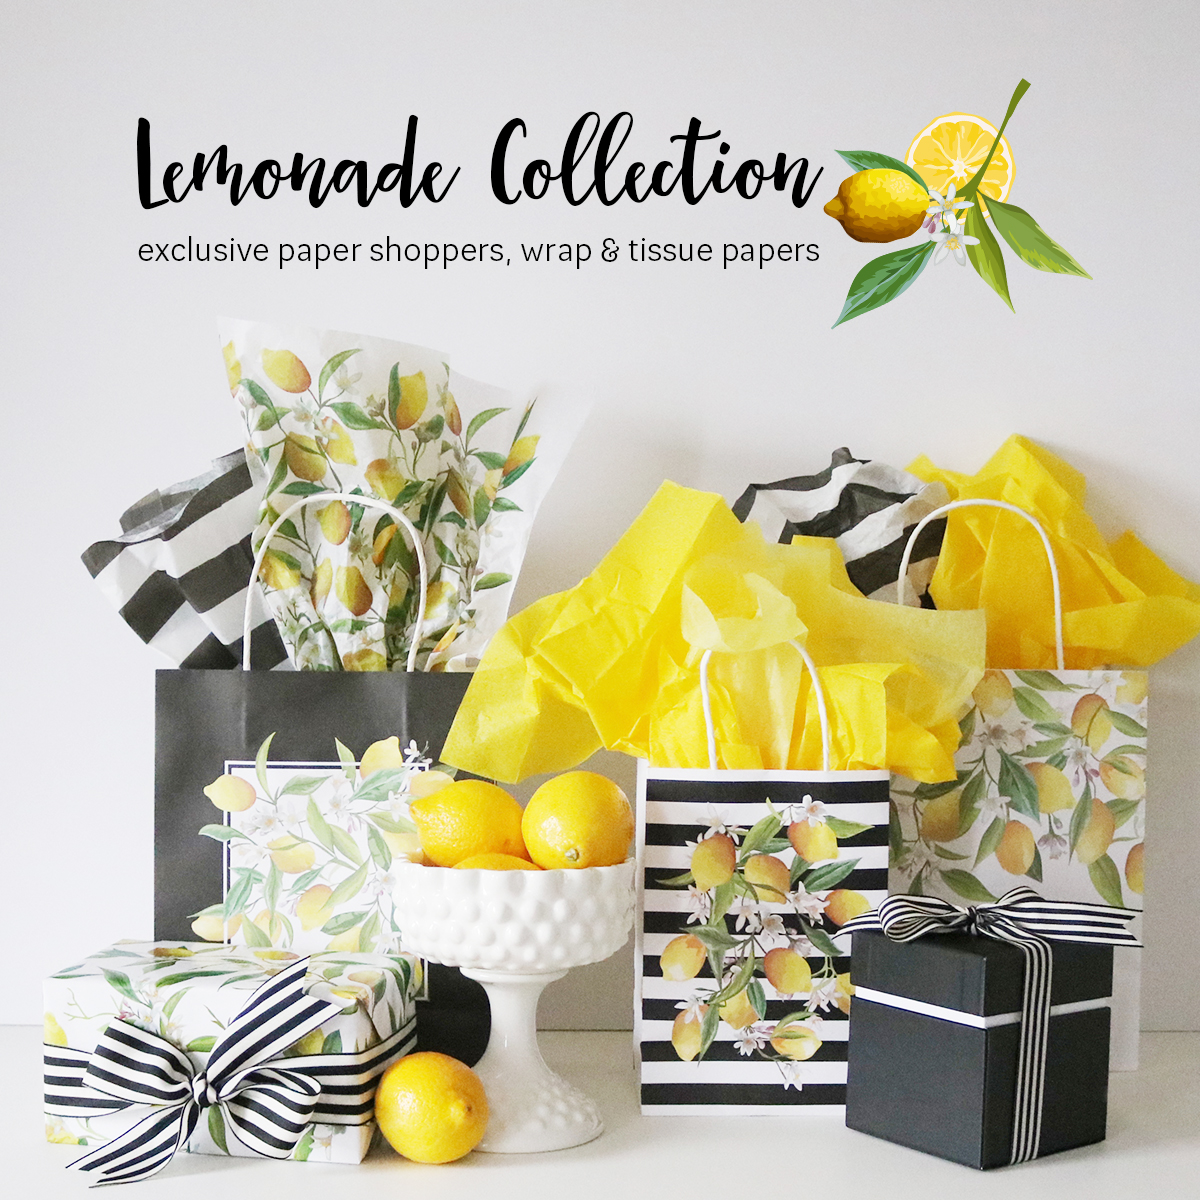 Lemonade Collection - exclusive paper shoppers, wrapping and tissue papers. | Creative Bag